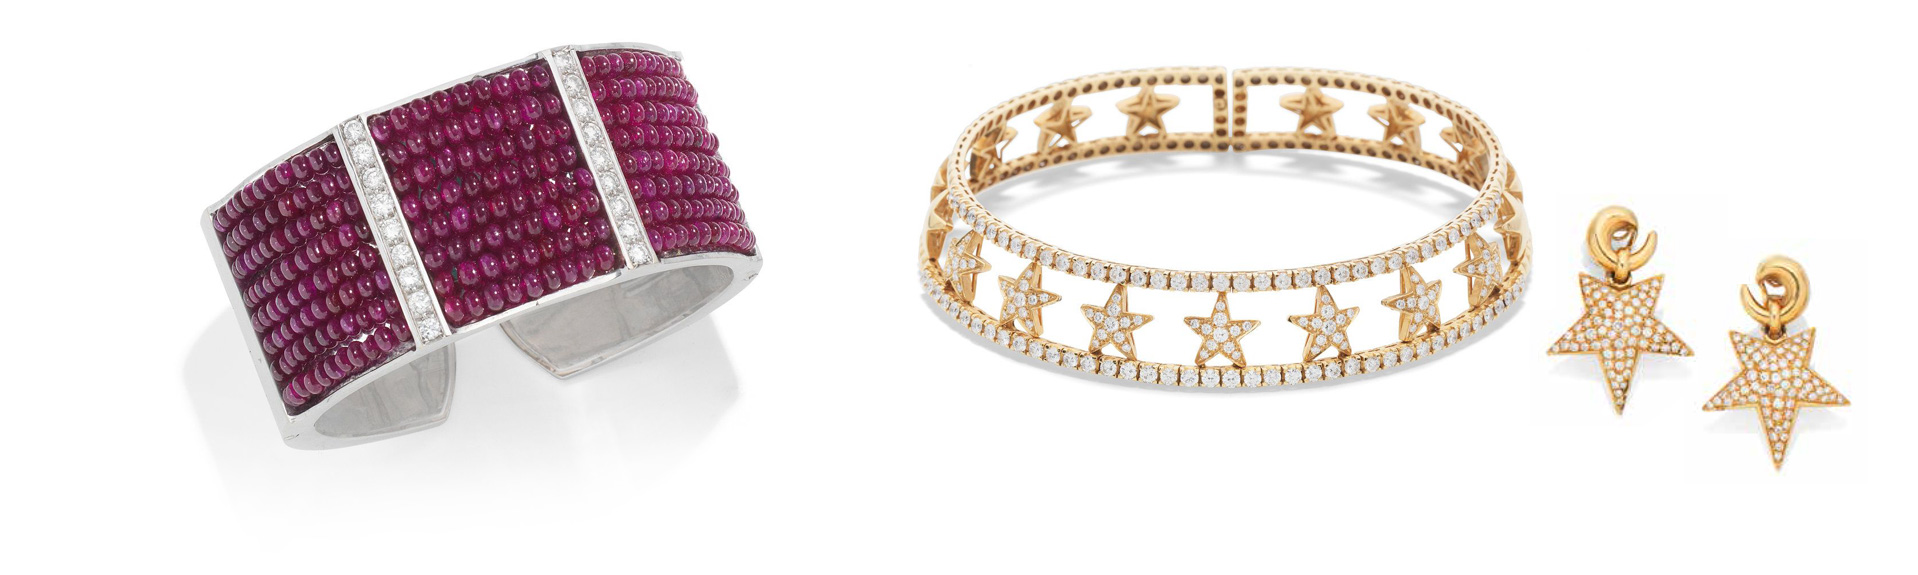 A Ruby and Diamond Cuff, and a Diamond Star Collar with a Pair of Pave Set Diamond Earclips